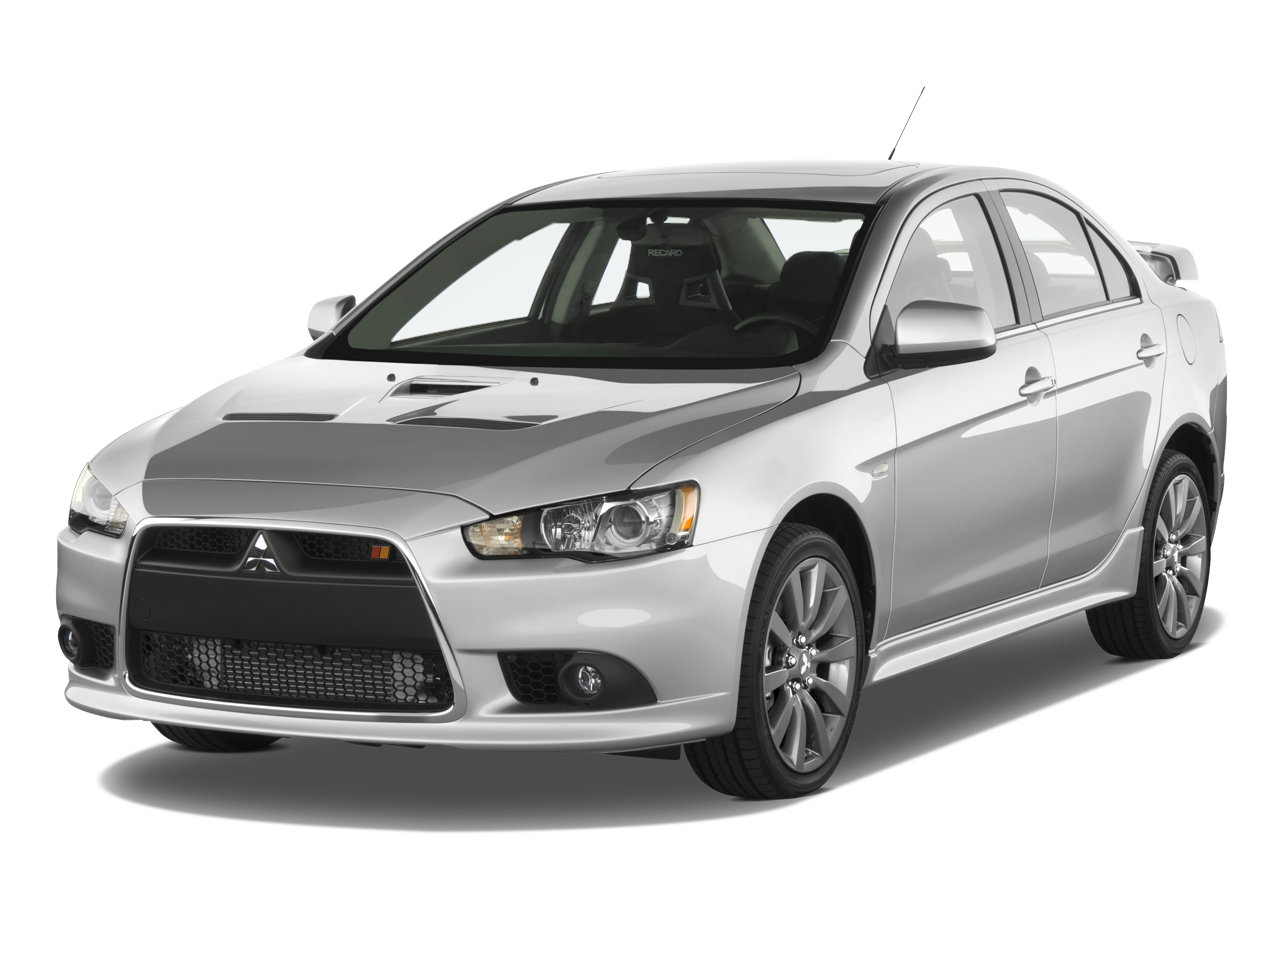 2009 mitsubishi lancer ralliart mitsubishi sport sedan. Black Bedroom Furniture Sets. Home Design Ideas